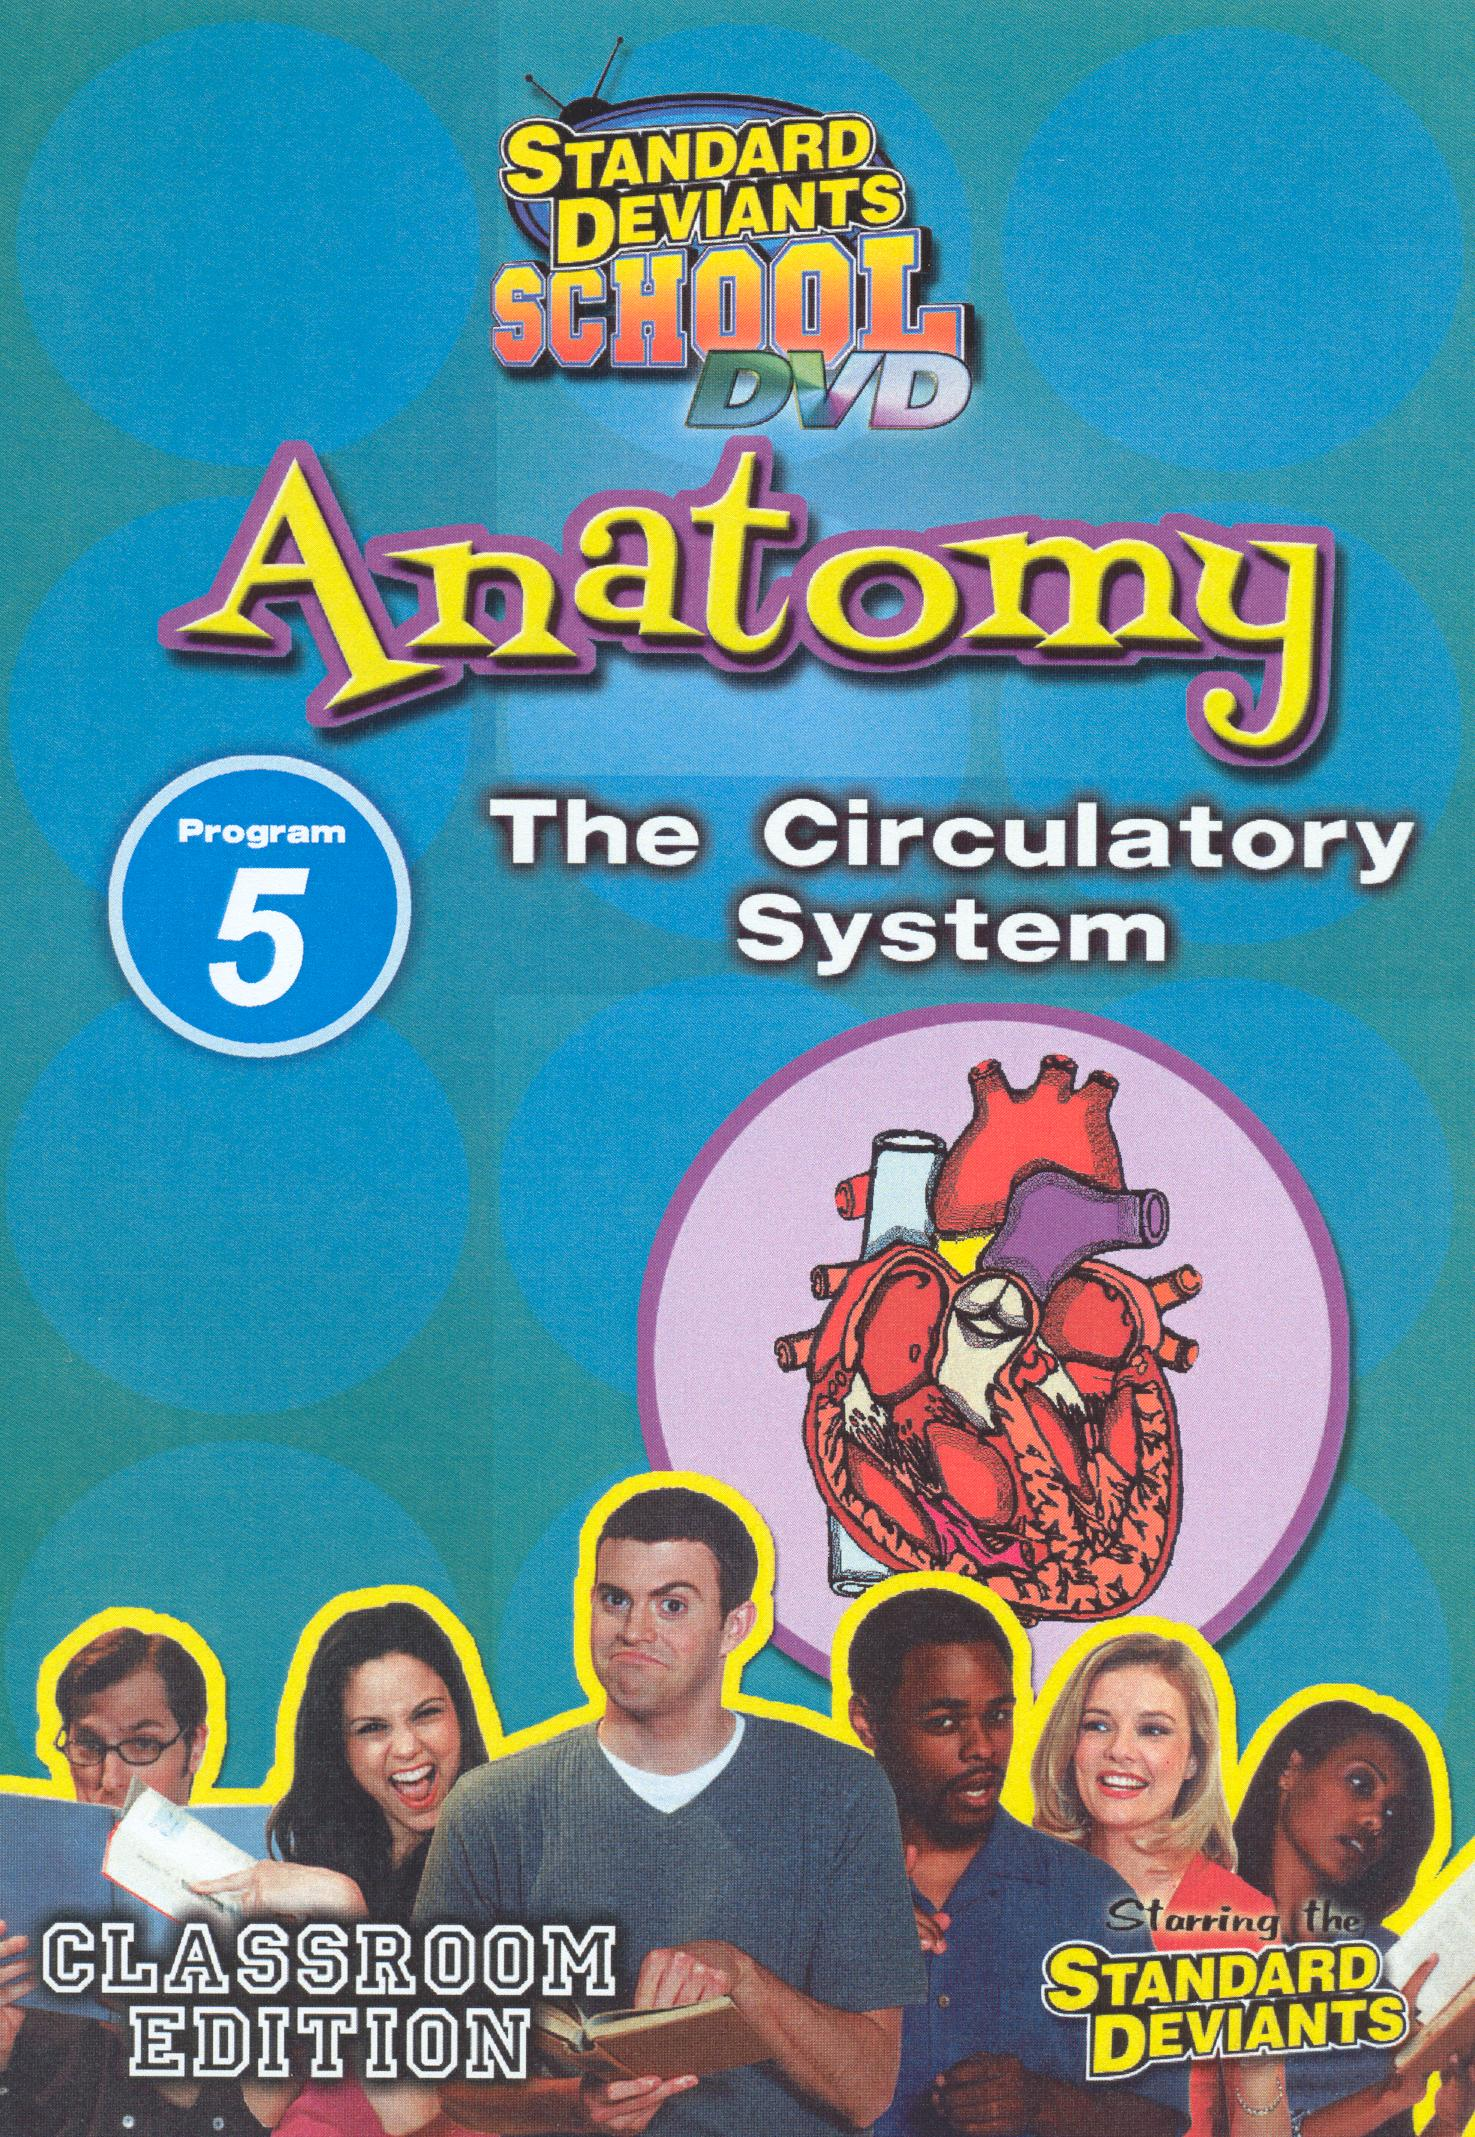 Standard Deviants School: Anatomy, Program 5 - The Circulatory System